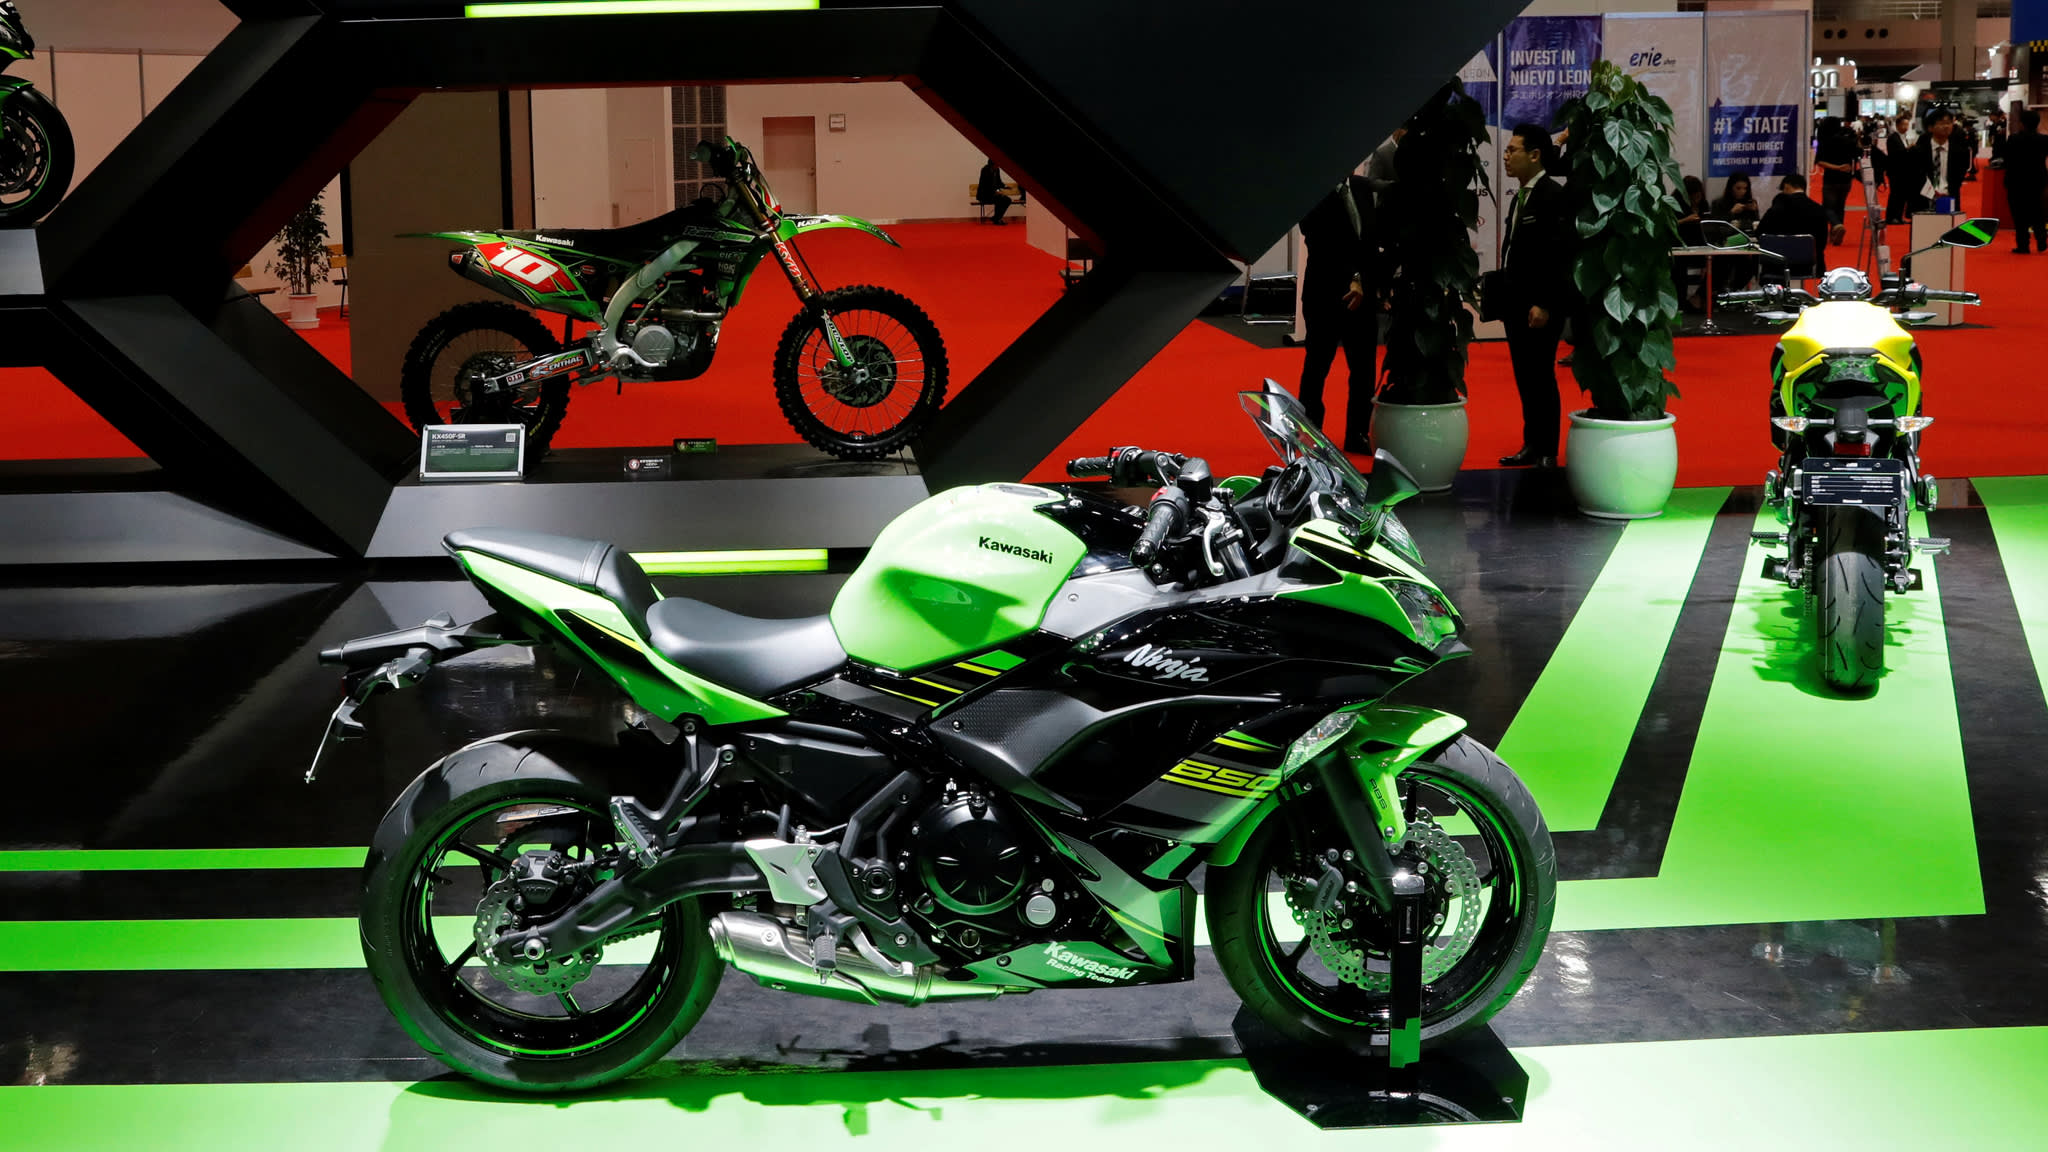 kawasaki to step up motorcycle production in india - nikkei asian review